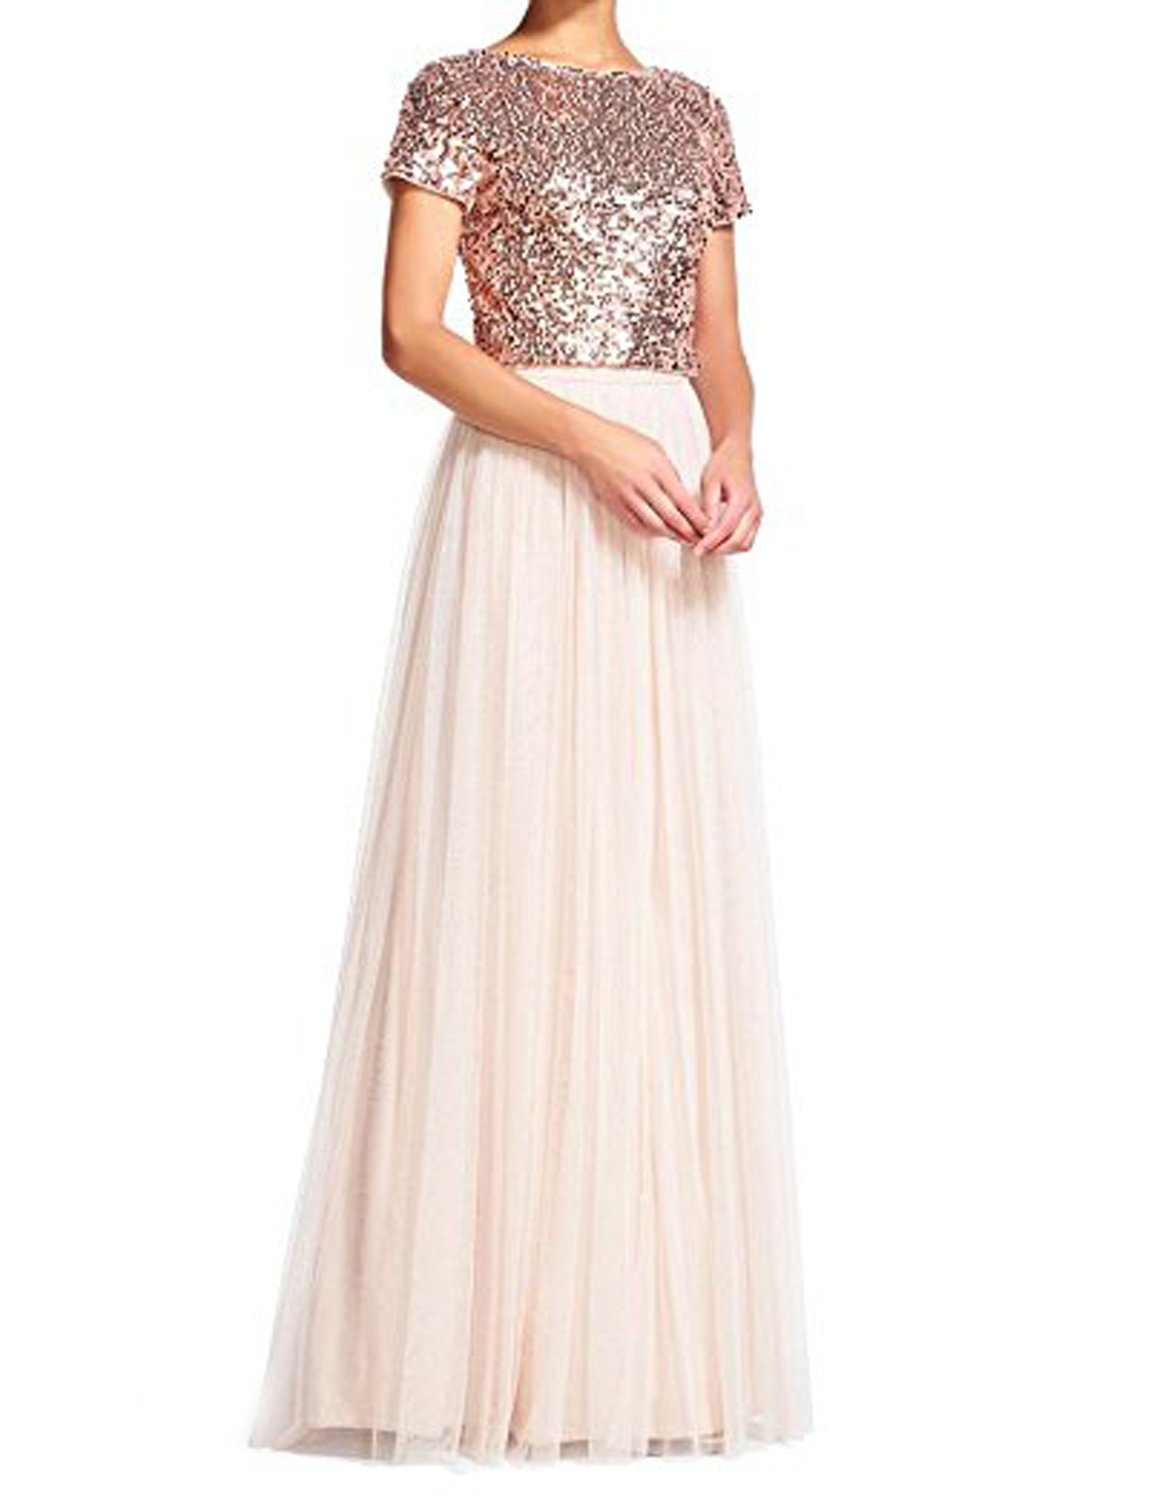 CIRCLEWLD Two Piece Prom Dress for Women Plus Size Sequins Top with Short Sleeve Maxi Skirt Tulle Rose Gold/Light Blush Size 18W